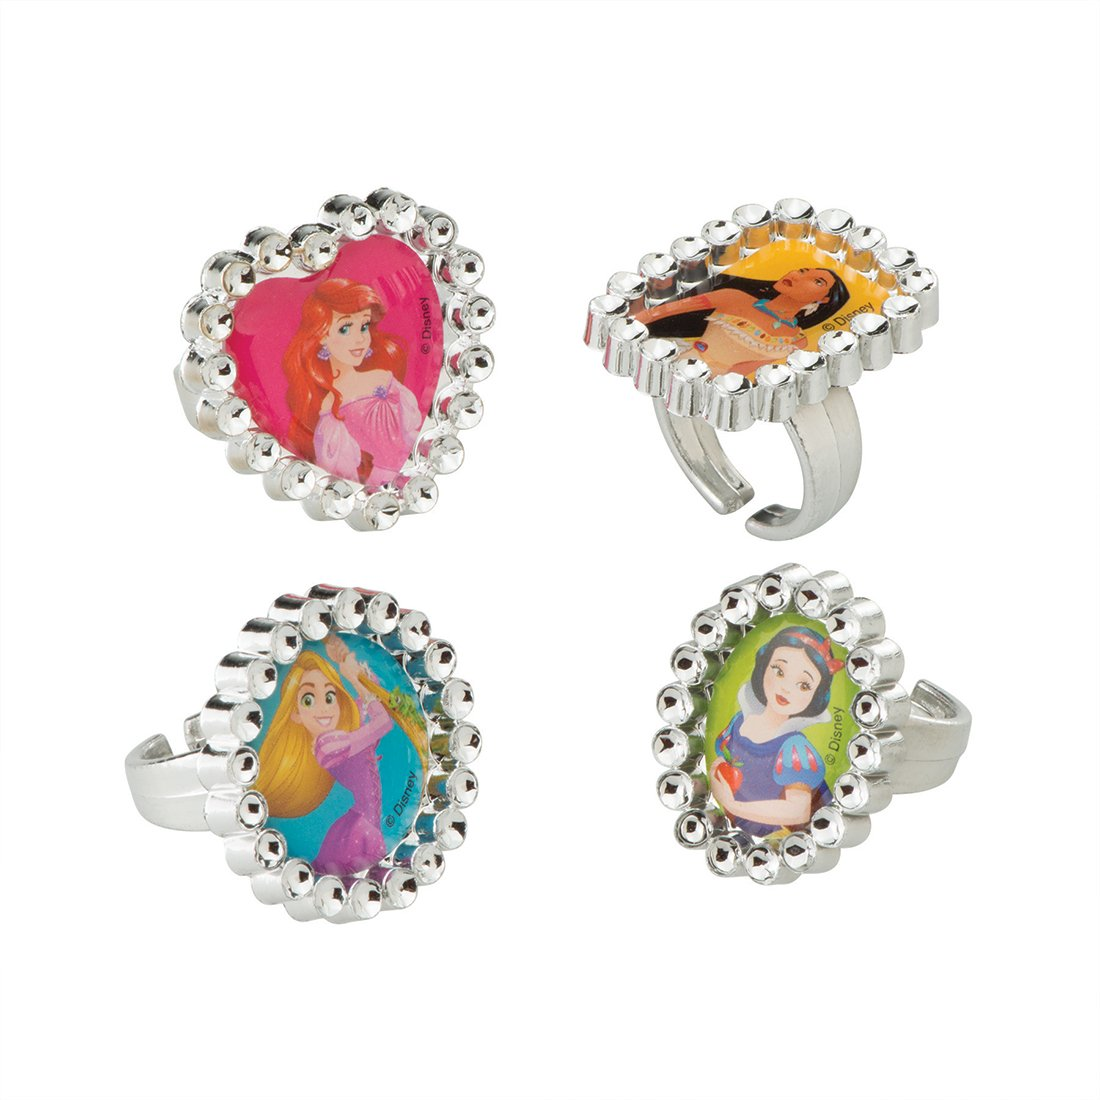 SmileMakers Disney Princess Jewel Rings - Prizes 144 per Pack by SmileMakers